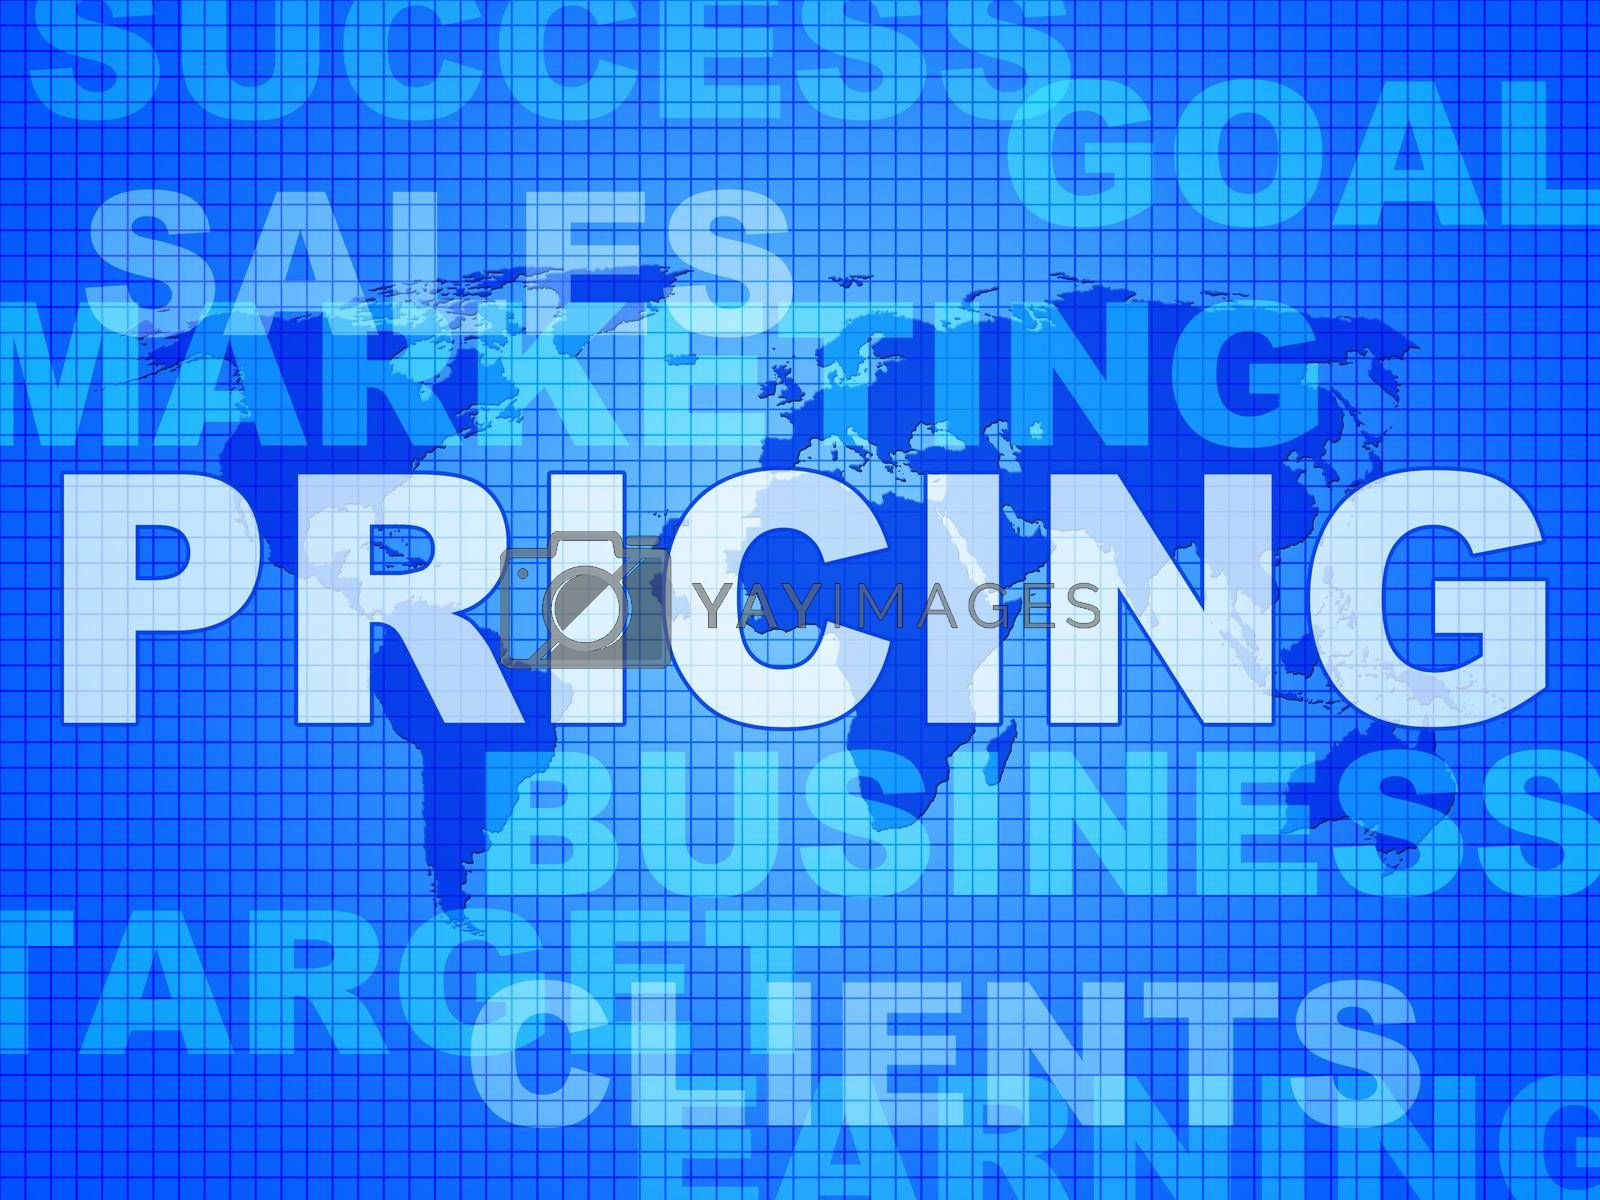 Pricing Words Means Money Outlay And Finances by stuartmiles